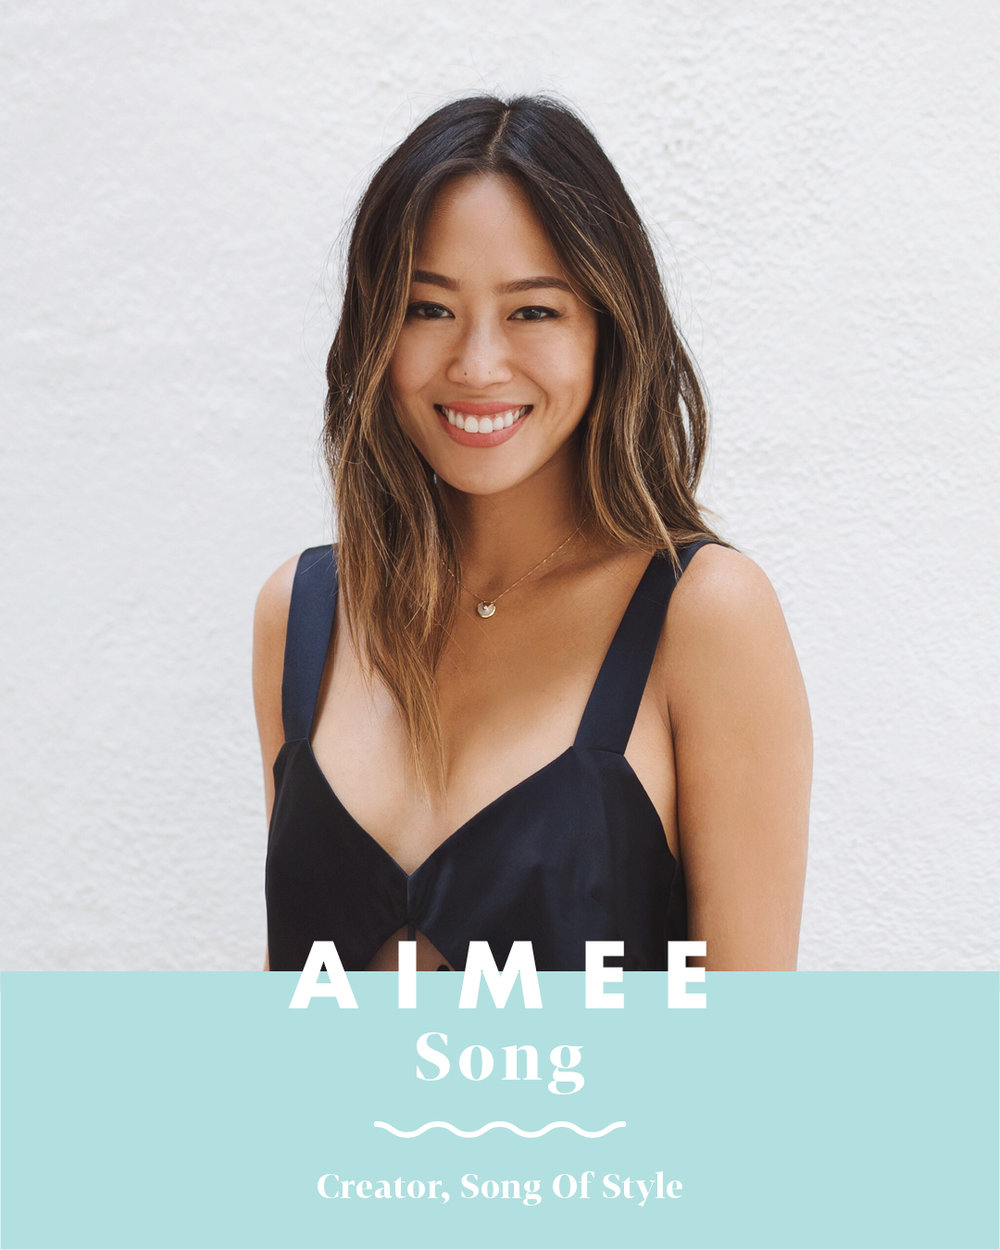 Aimee-song.jpg